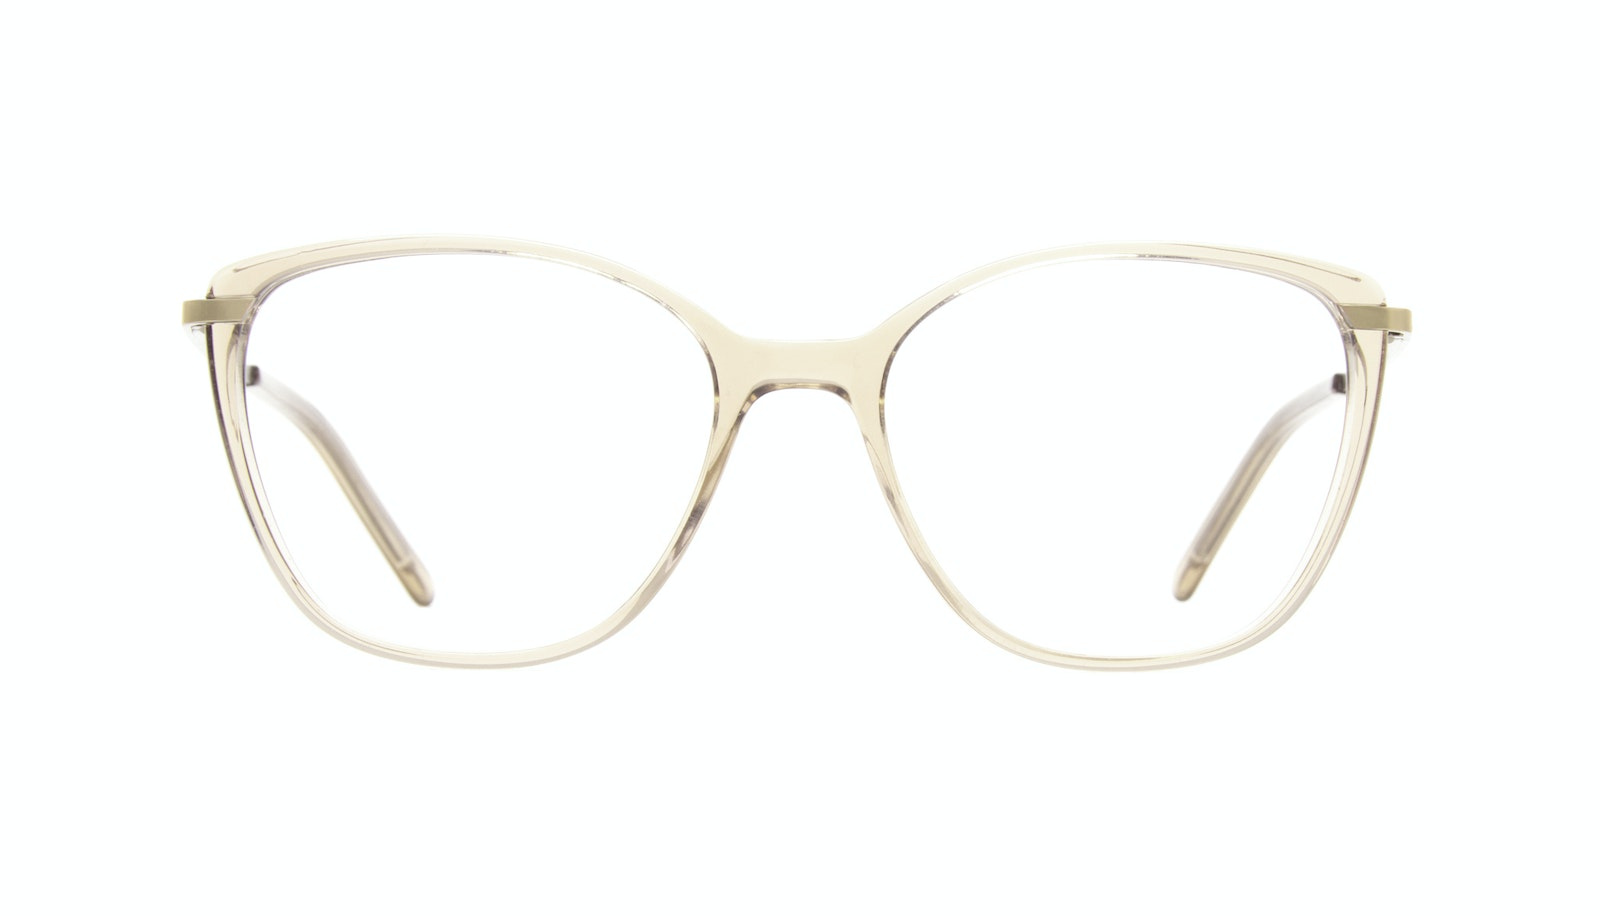 Affordable Fashion Glasses Rectangle Square Eyeglasses Women Illusion M Blond